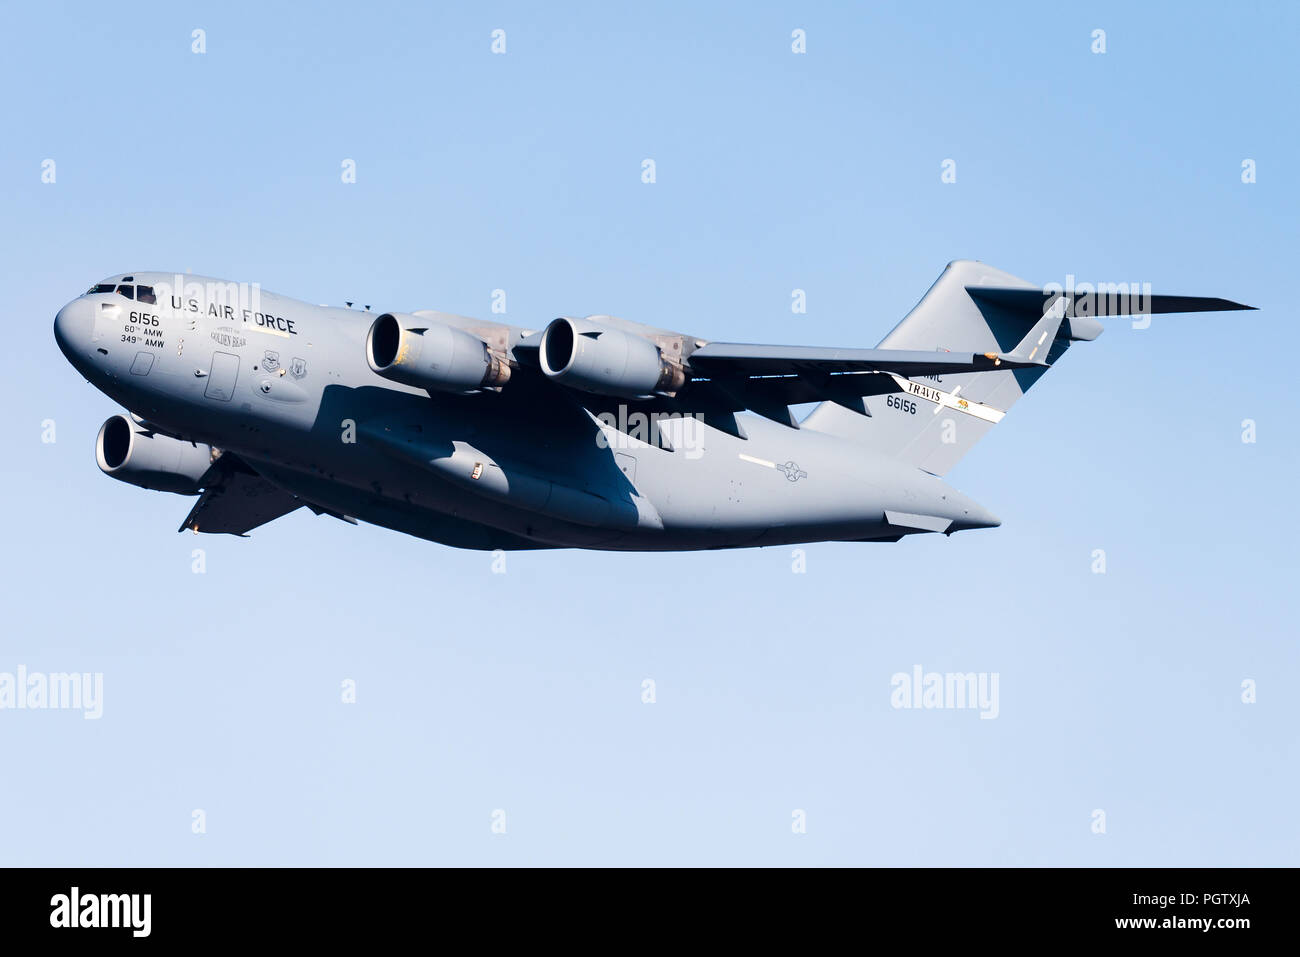 A Boeing C-17 Globemaster III from the 60th Air Mobility Wing of the Unites States Air Force. - Stock Image